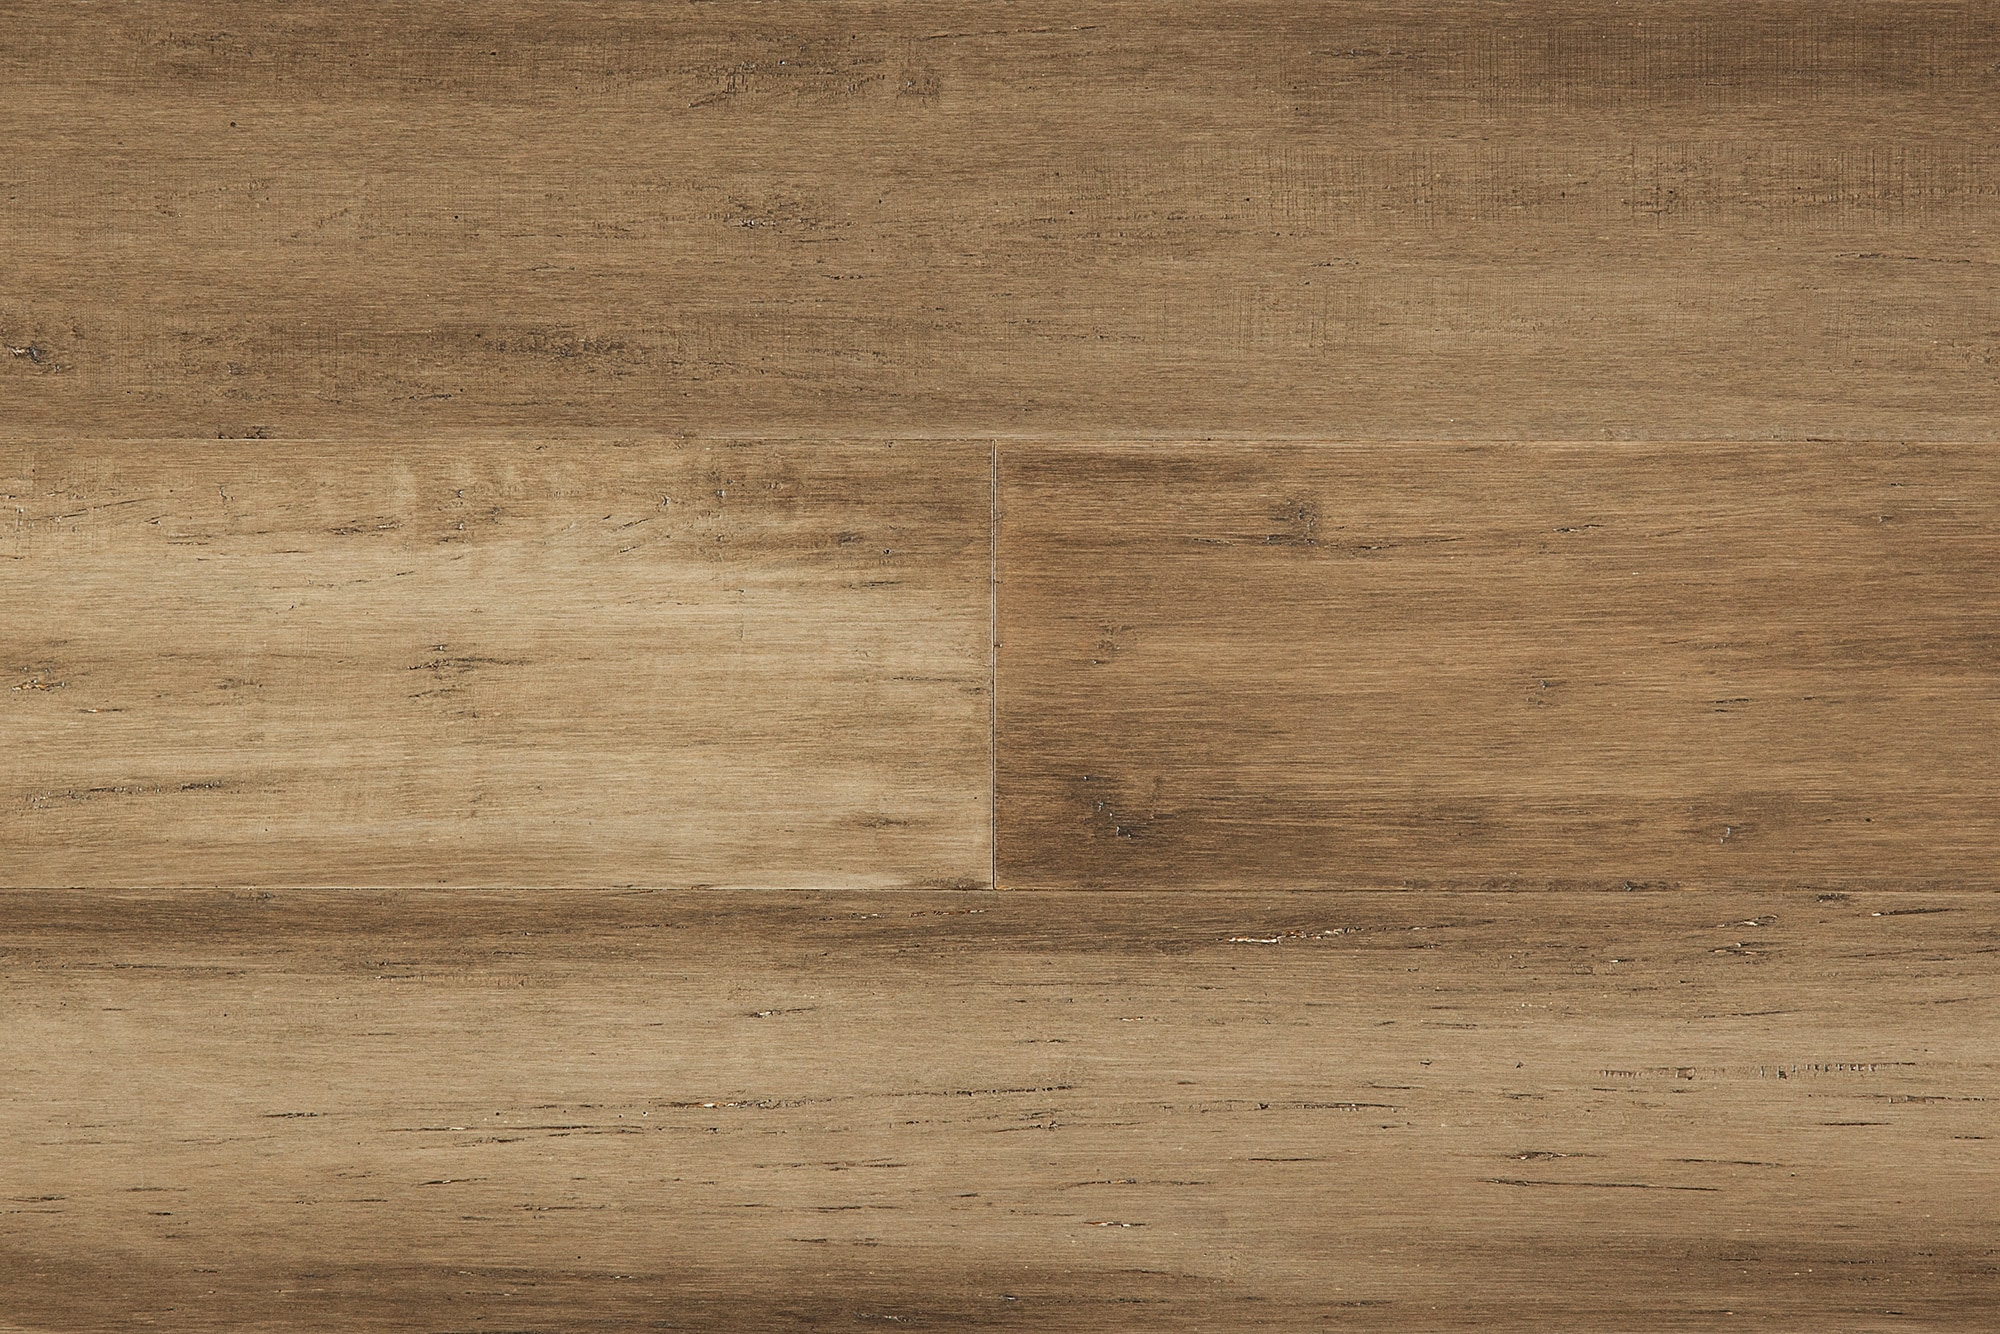 Yanchi Bamboo Flooring 12 mm Solid Lock Collection Rustic